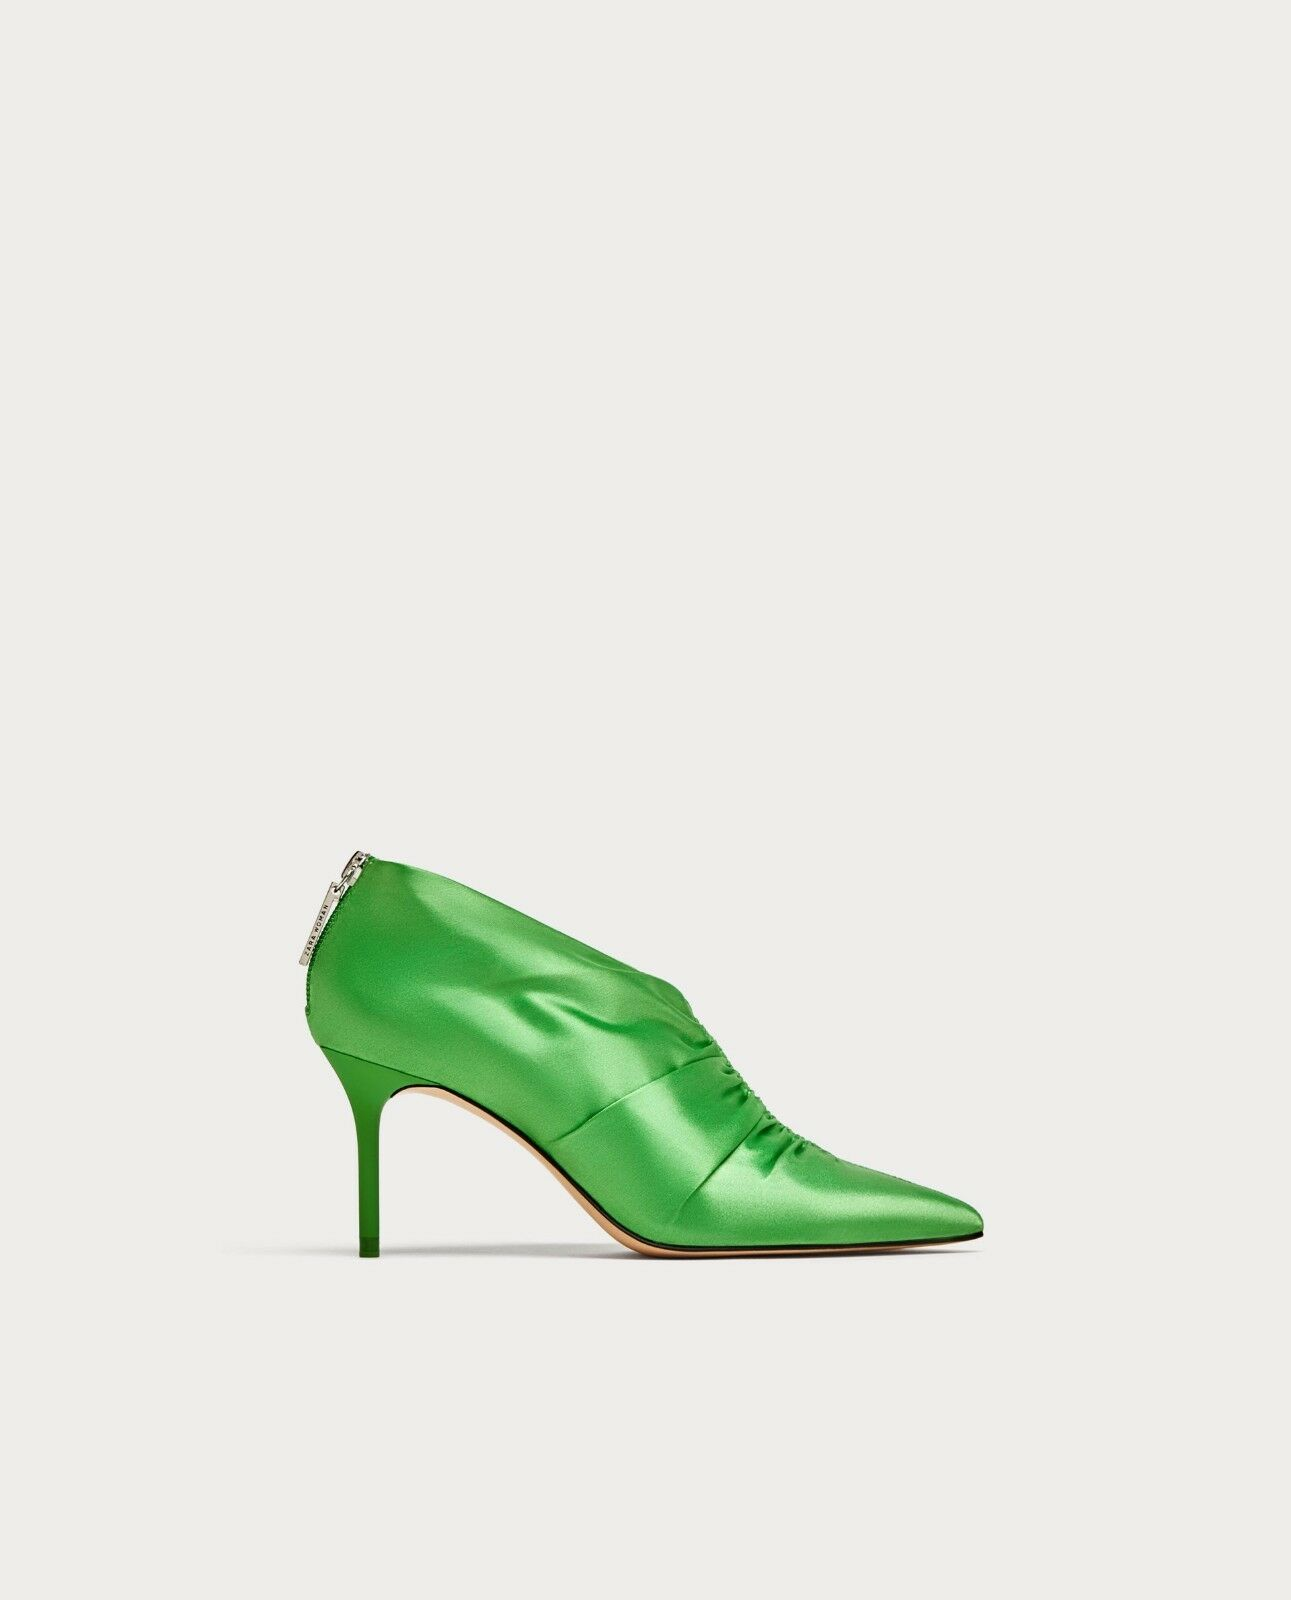 ZARA NEW HIGH HEEL ANKLE Stiefel WITH WITH WITH GATHEROT DETAIL GREEN 5120/201 984aba